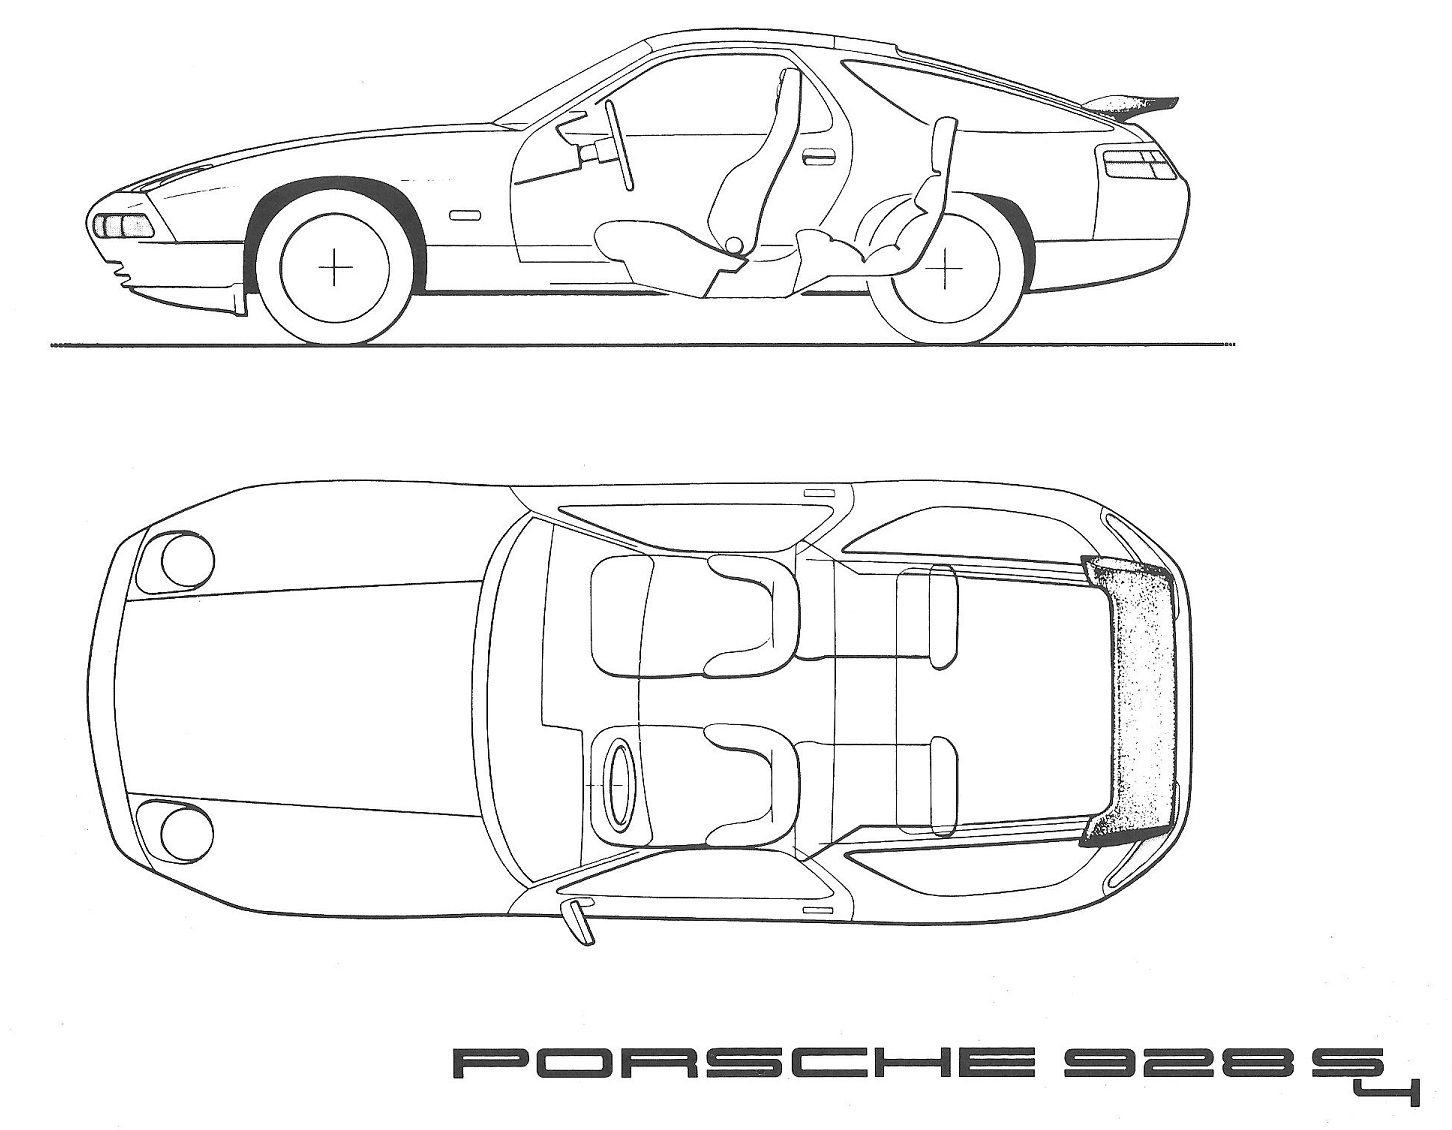 203886 Factory Alarm System As Source Of Problem as well Index besides  together with 1986 Porsche 944 Power Steering Diagram likewise 96 Mitsubishi 3000gt Wiring Diagrams. on porsche 928 s4